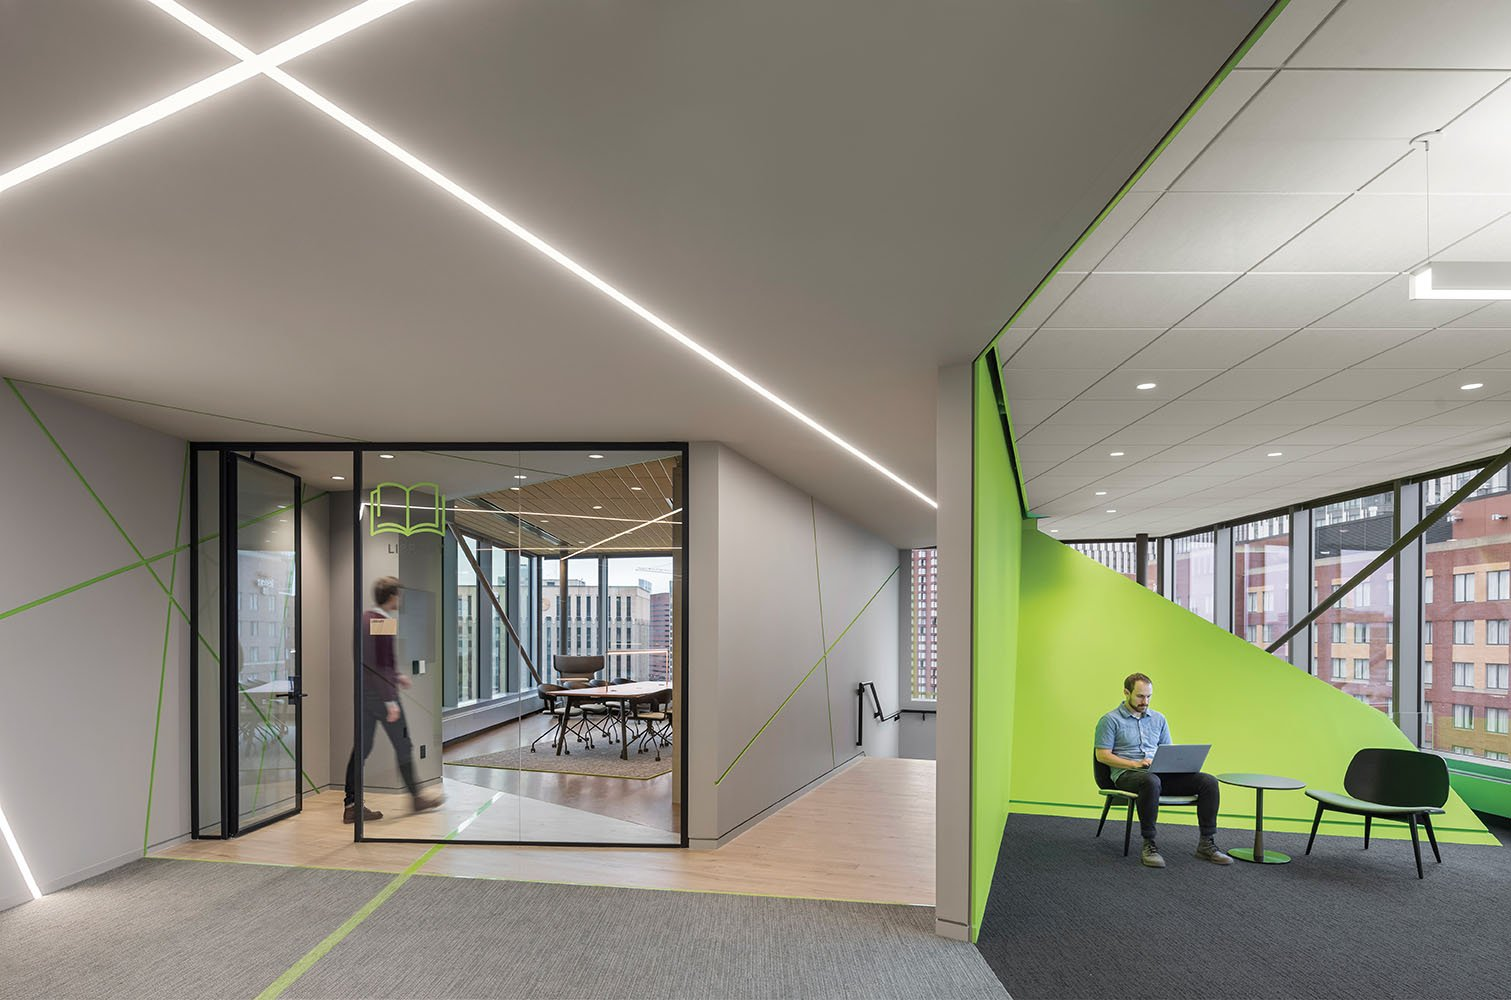 The exterior of the AkaMile is vibrantly colored across all floors, giving a clear indication of where to go to connect with co-workers Anton Grassl